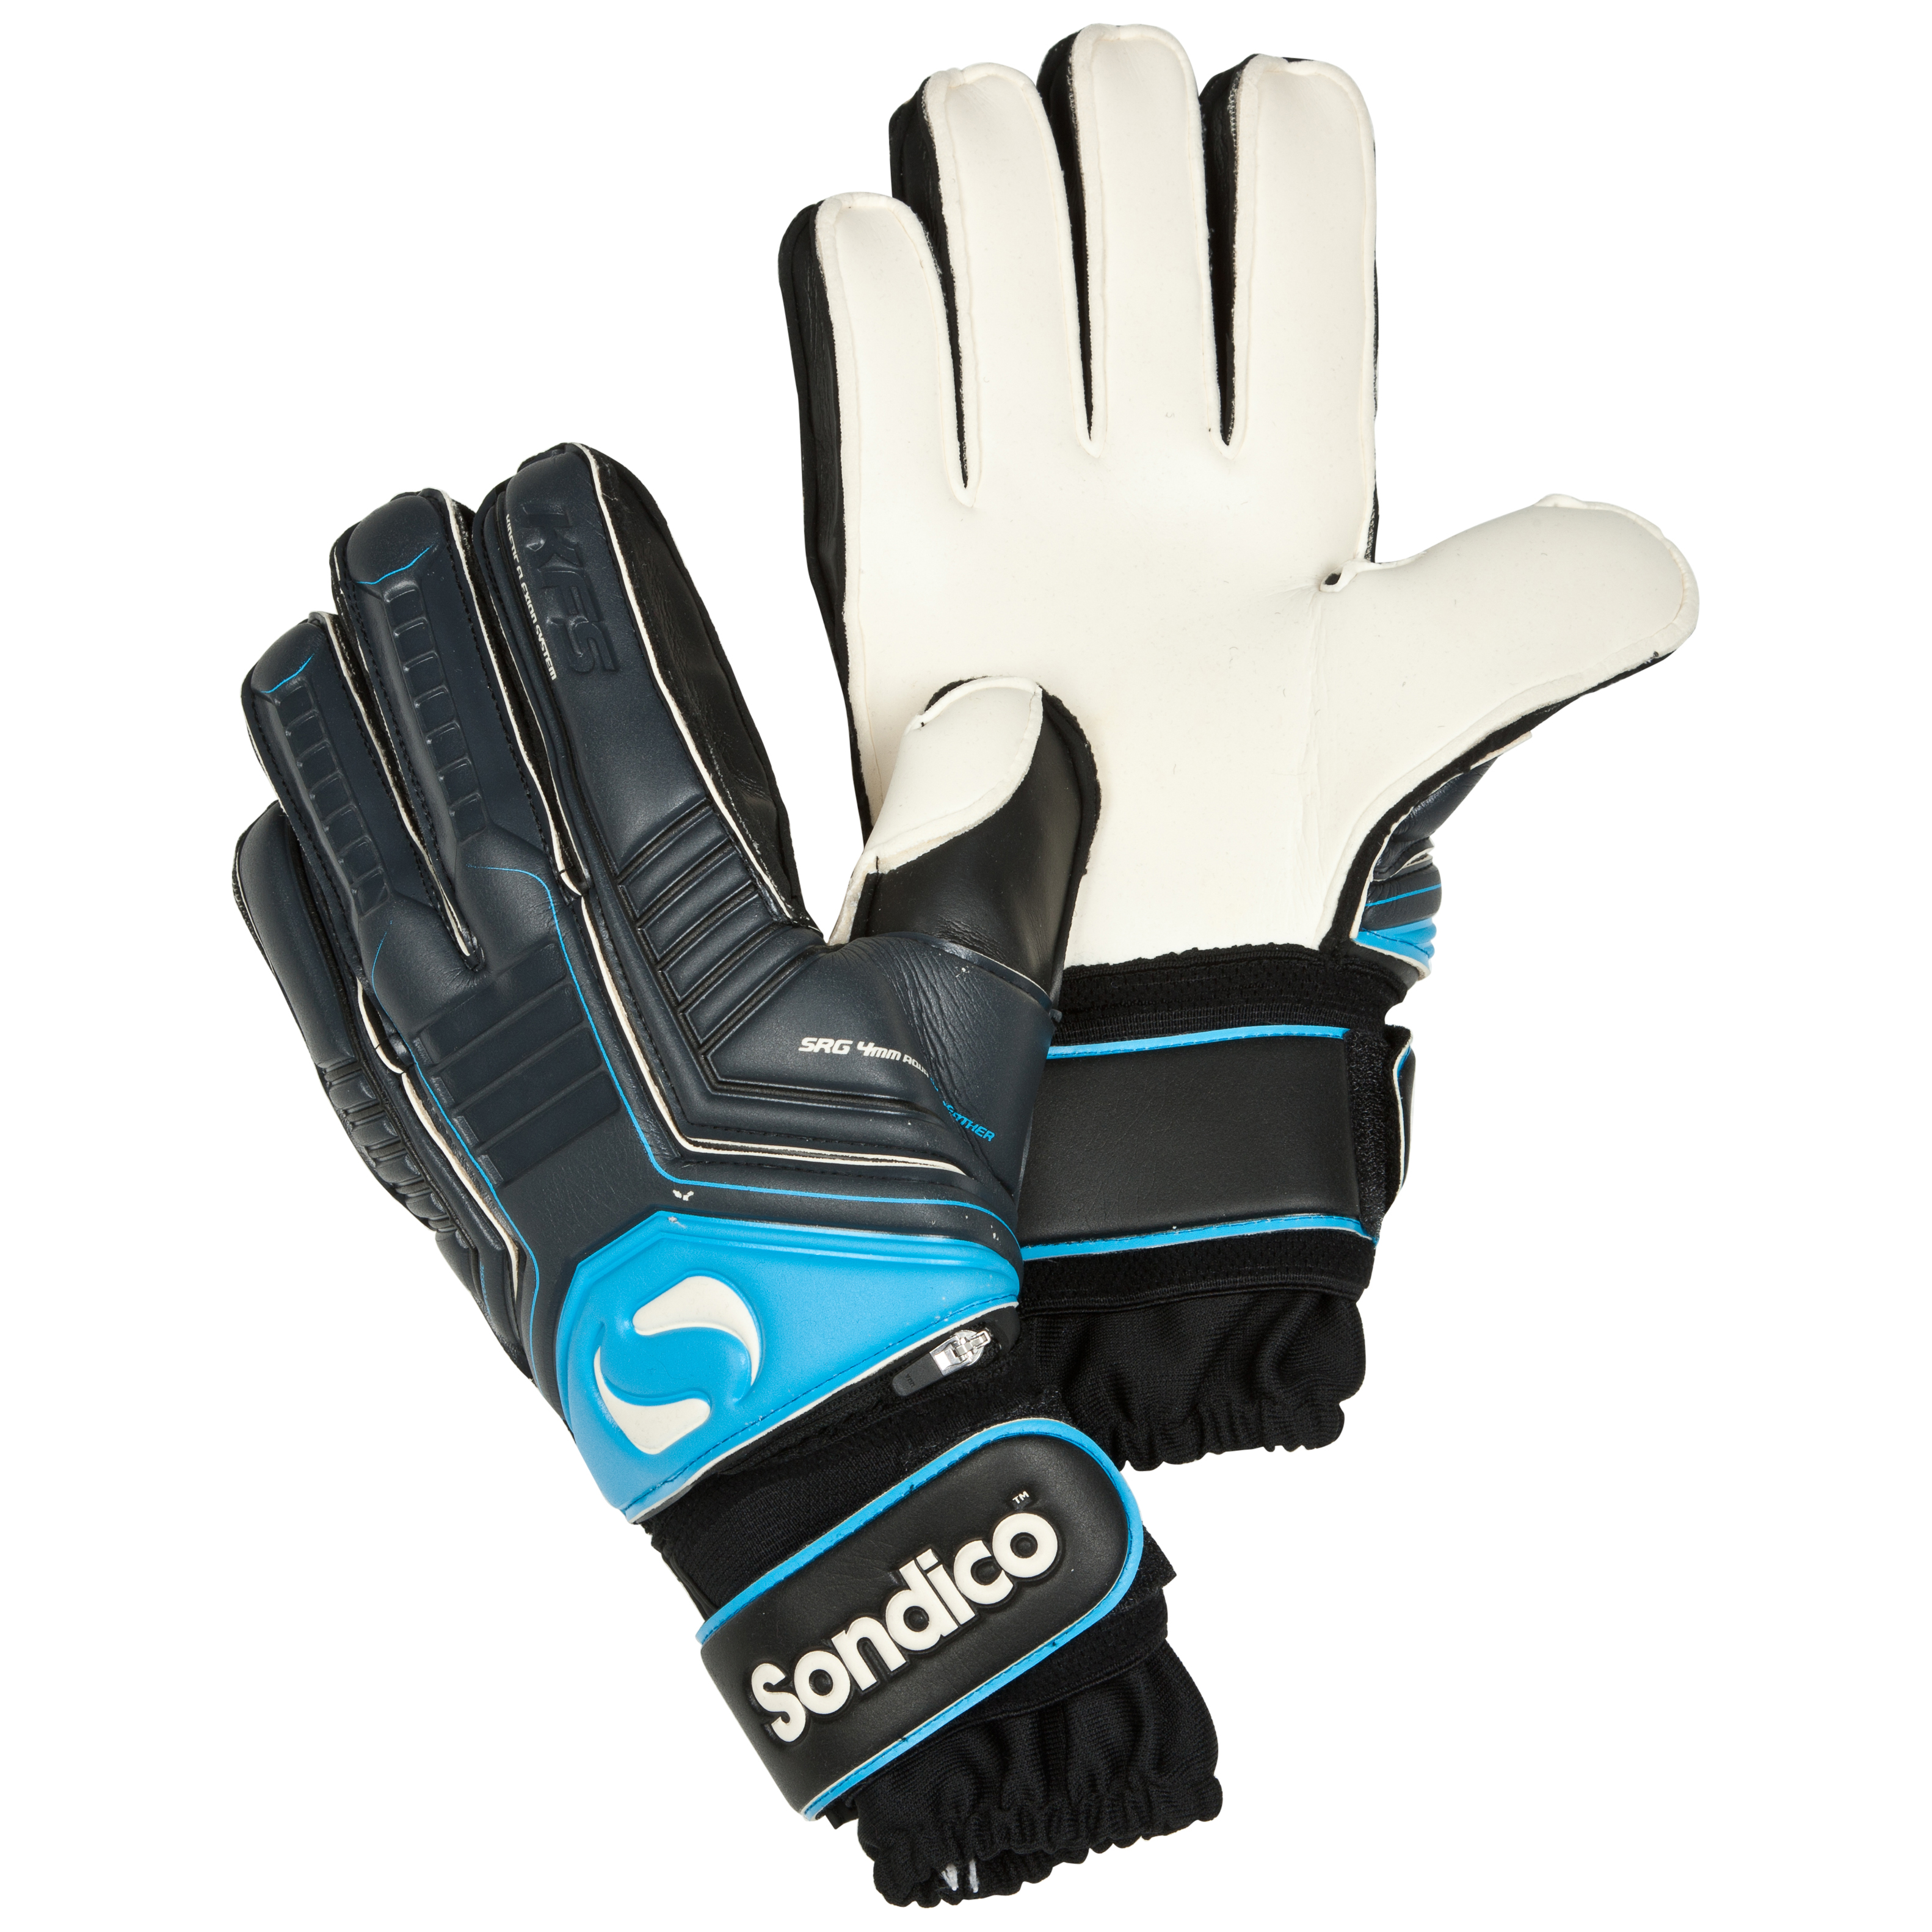 Sondico Sentinel Pro KFS Finger Protection Flat Palm Goalkeeper Gloves - Black/White/Cool Grey/Cyan